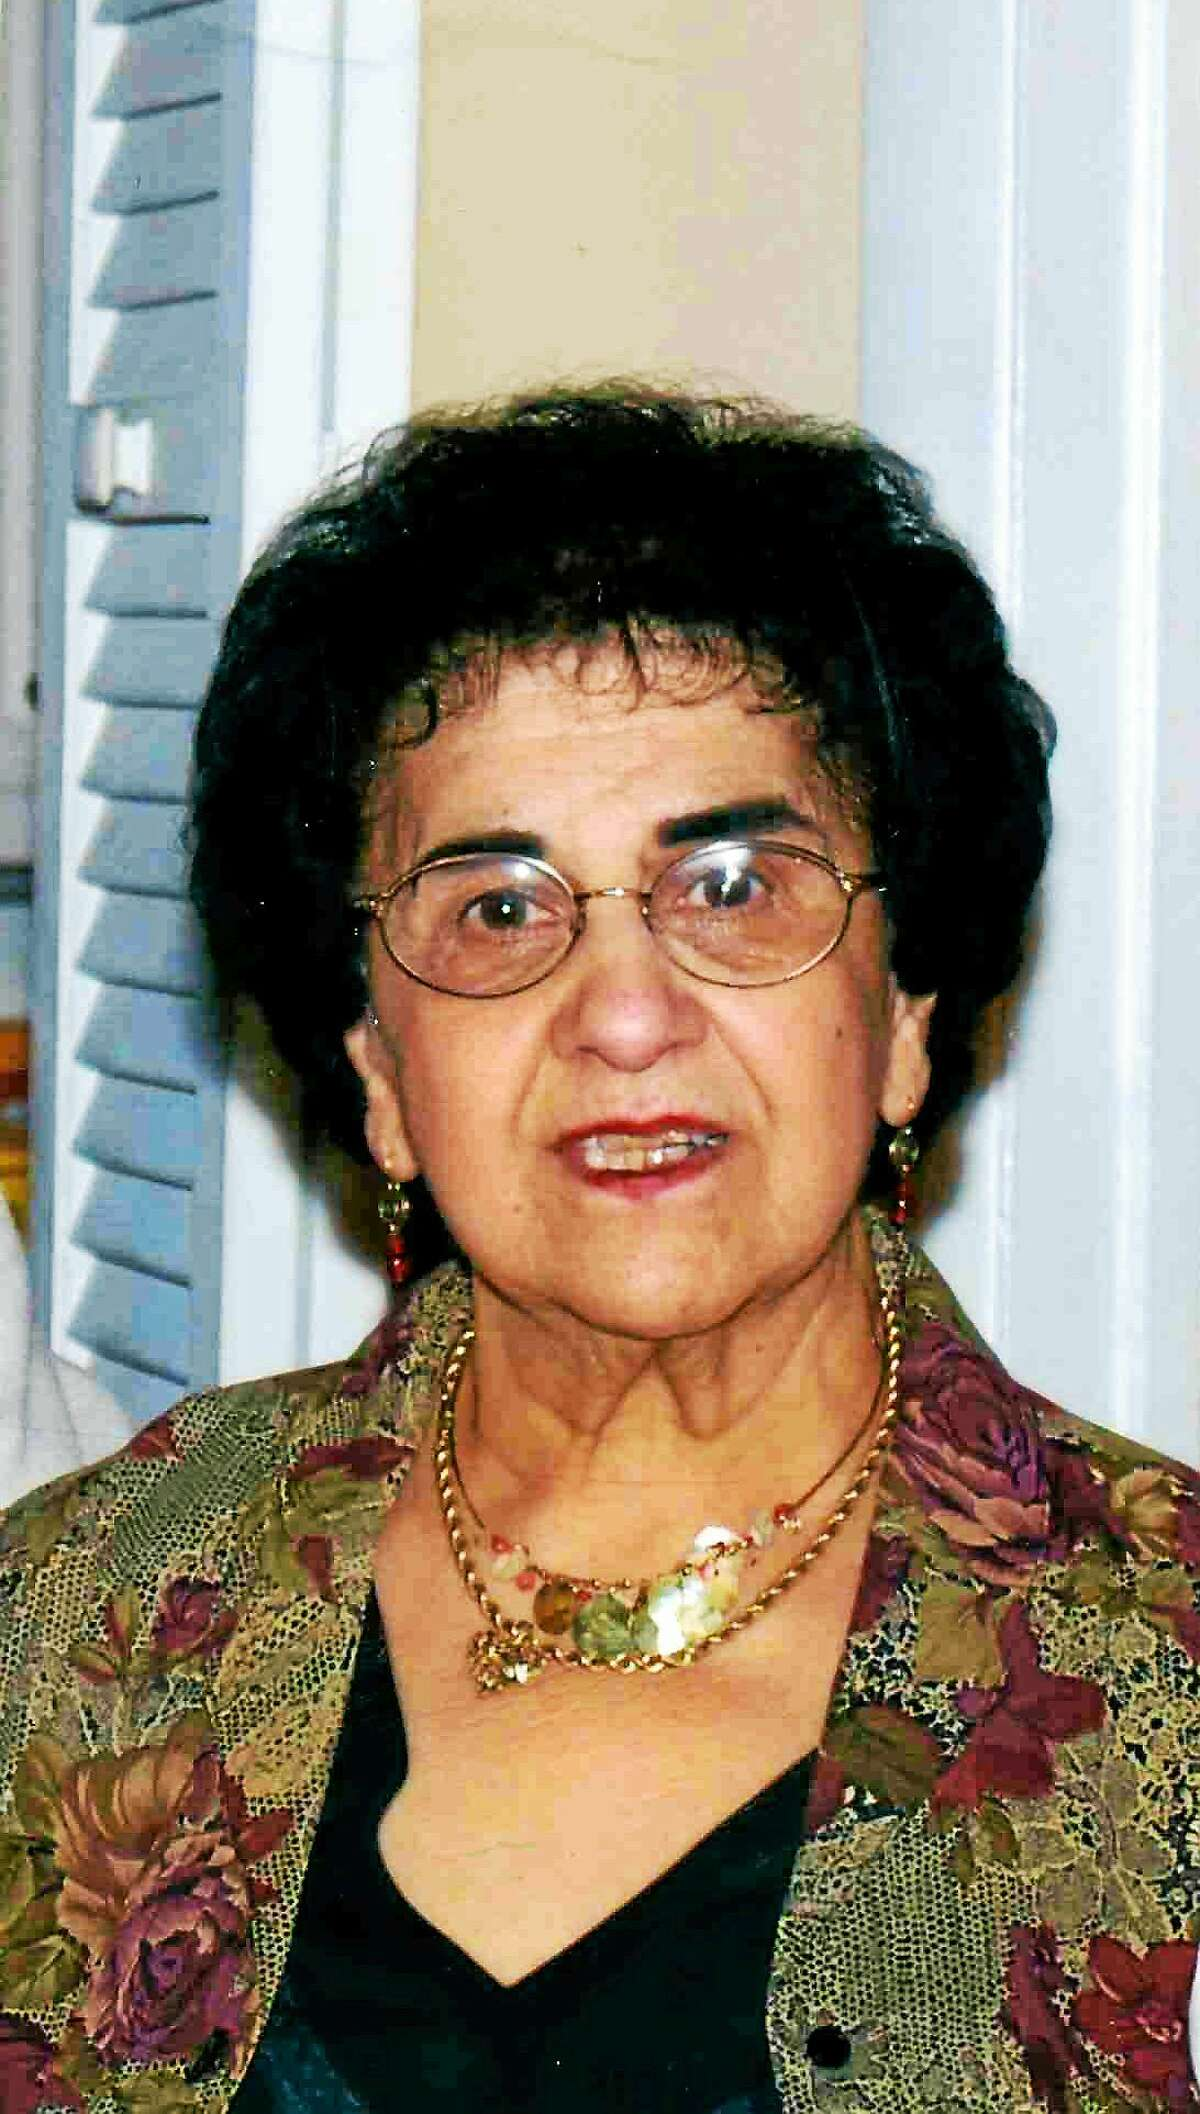 Mary (Carrano) DiPino